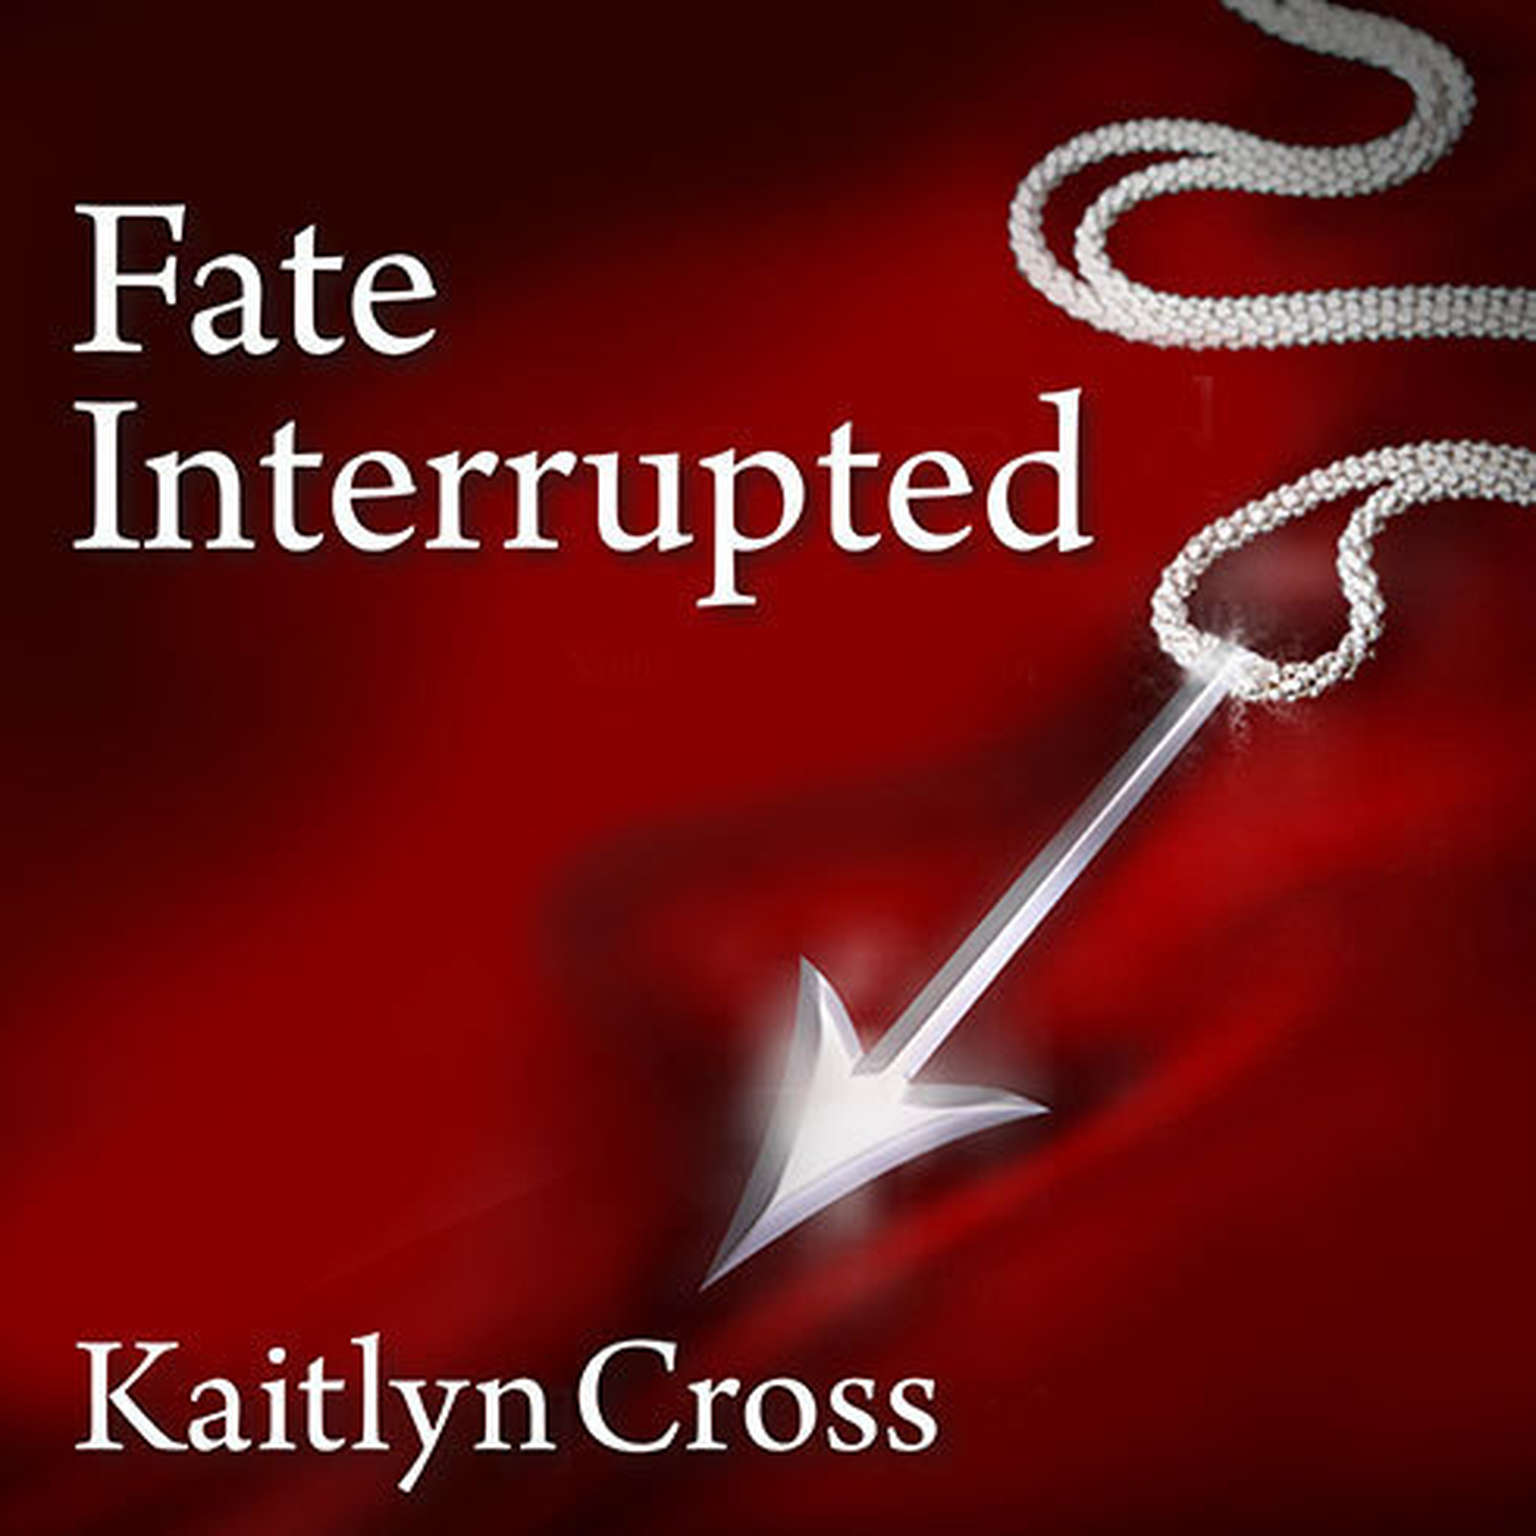 Printable Fate Interrupted Audiobook Cover Art